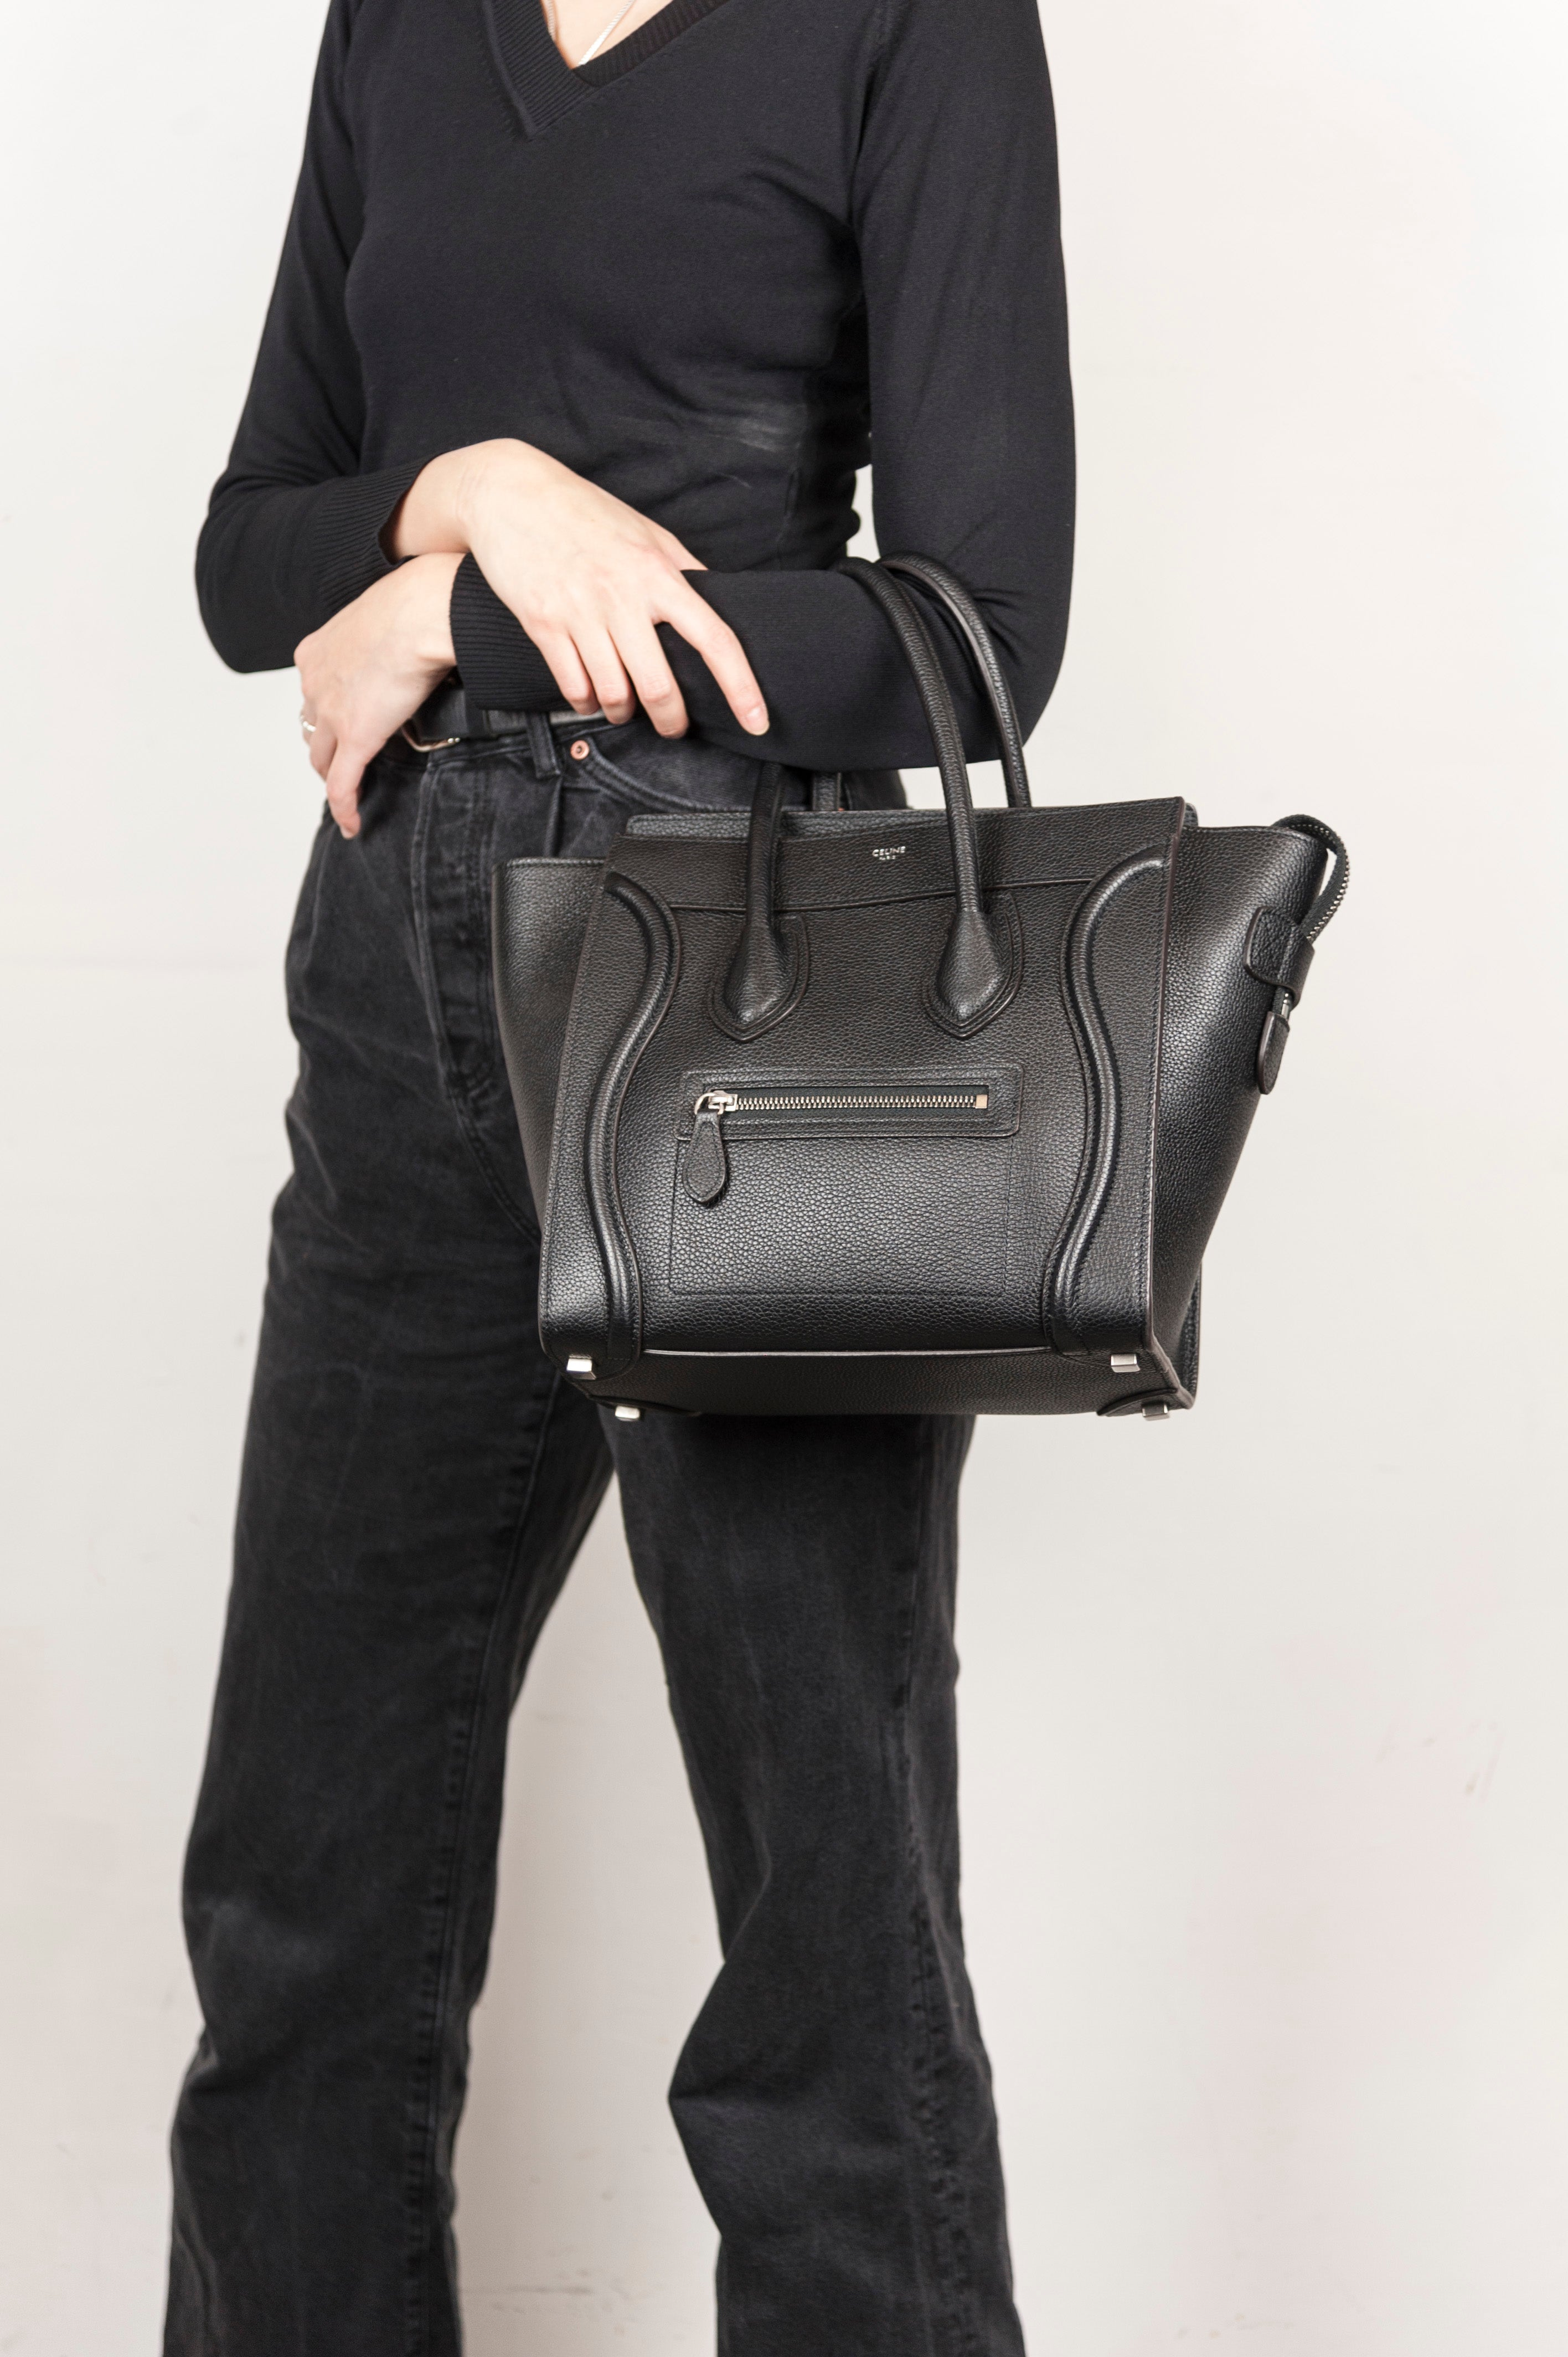 Celine Borsa Luggage Mini in pelle nera